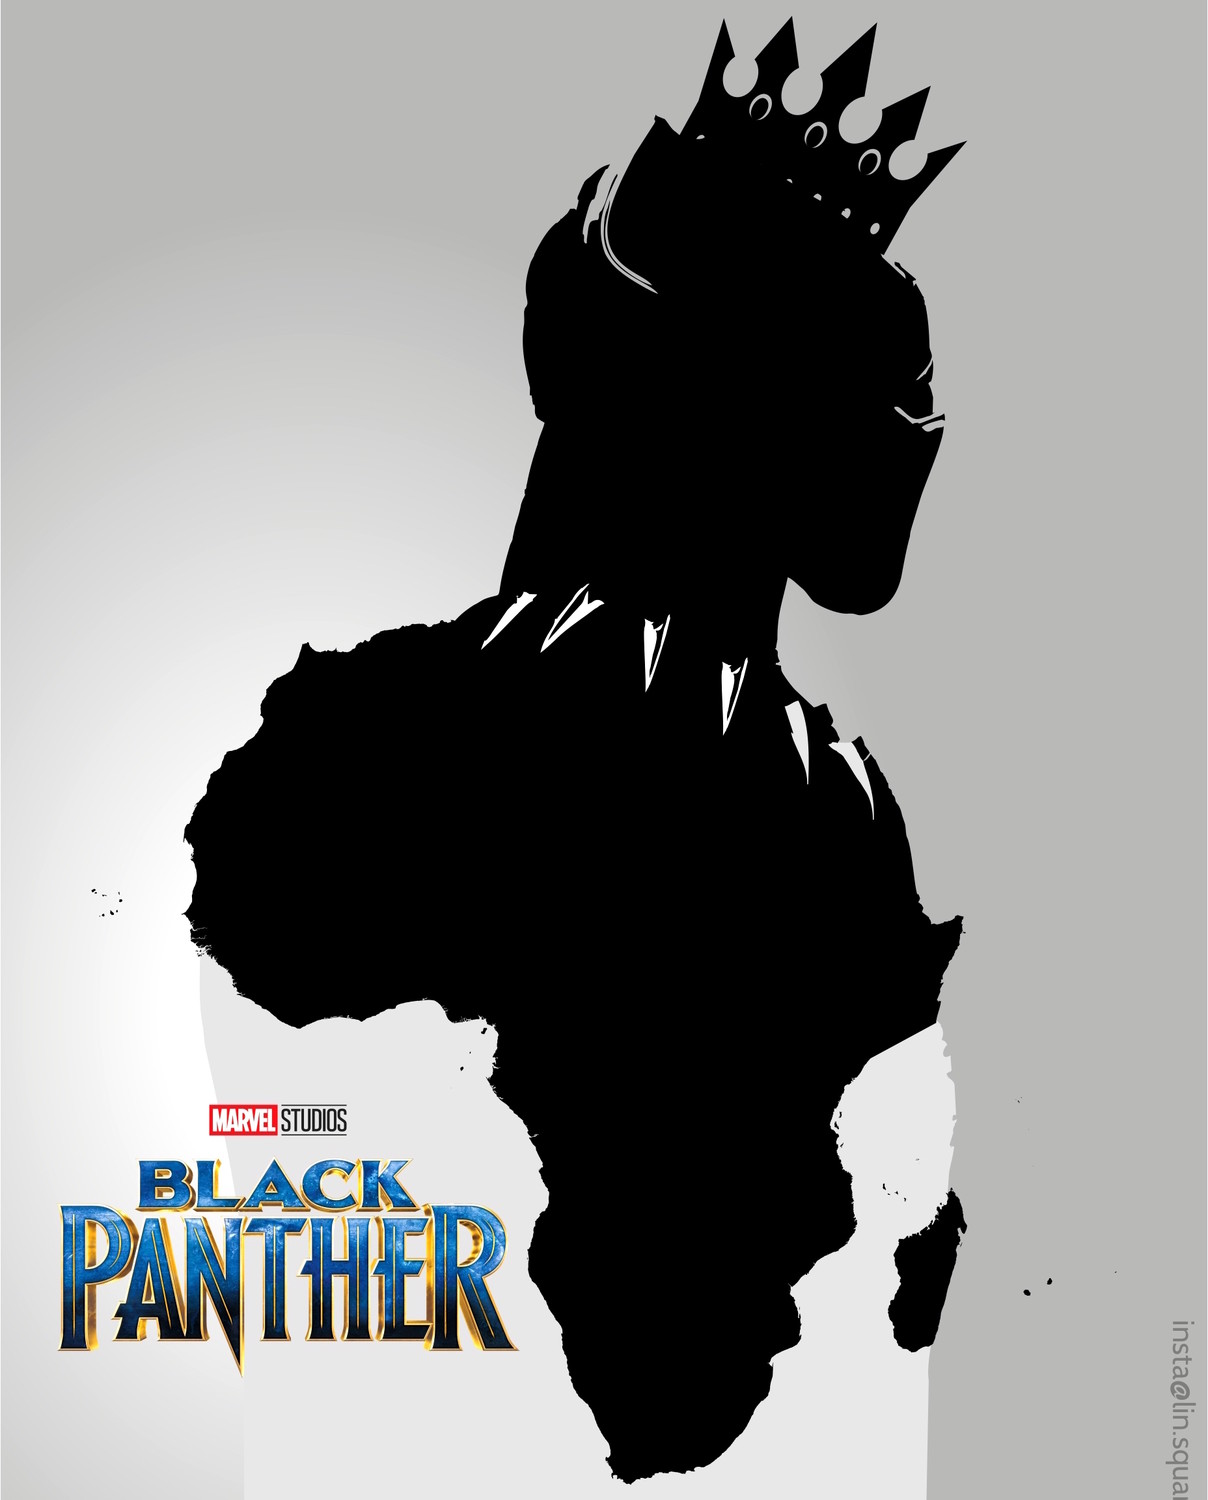 Black Panther is the most tweeted about movie ever